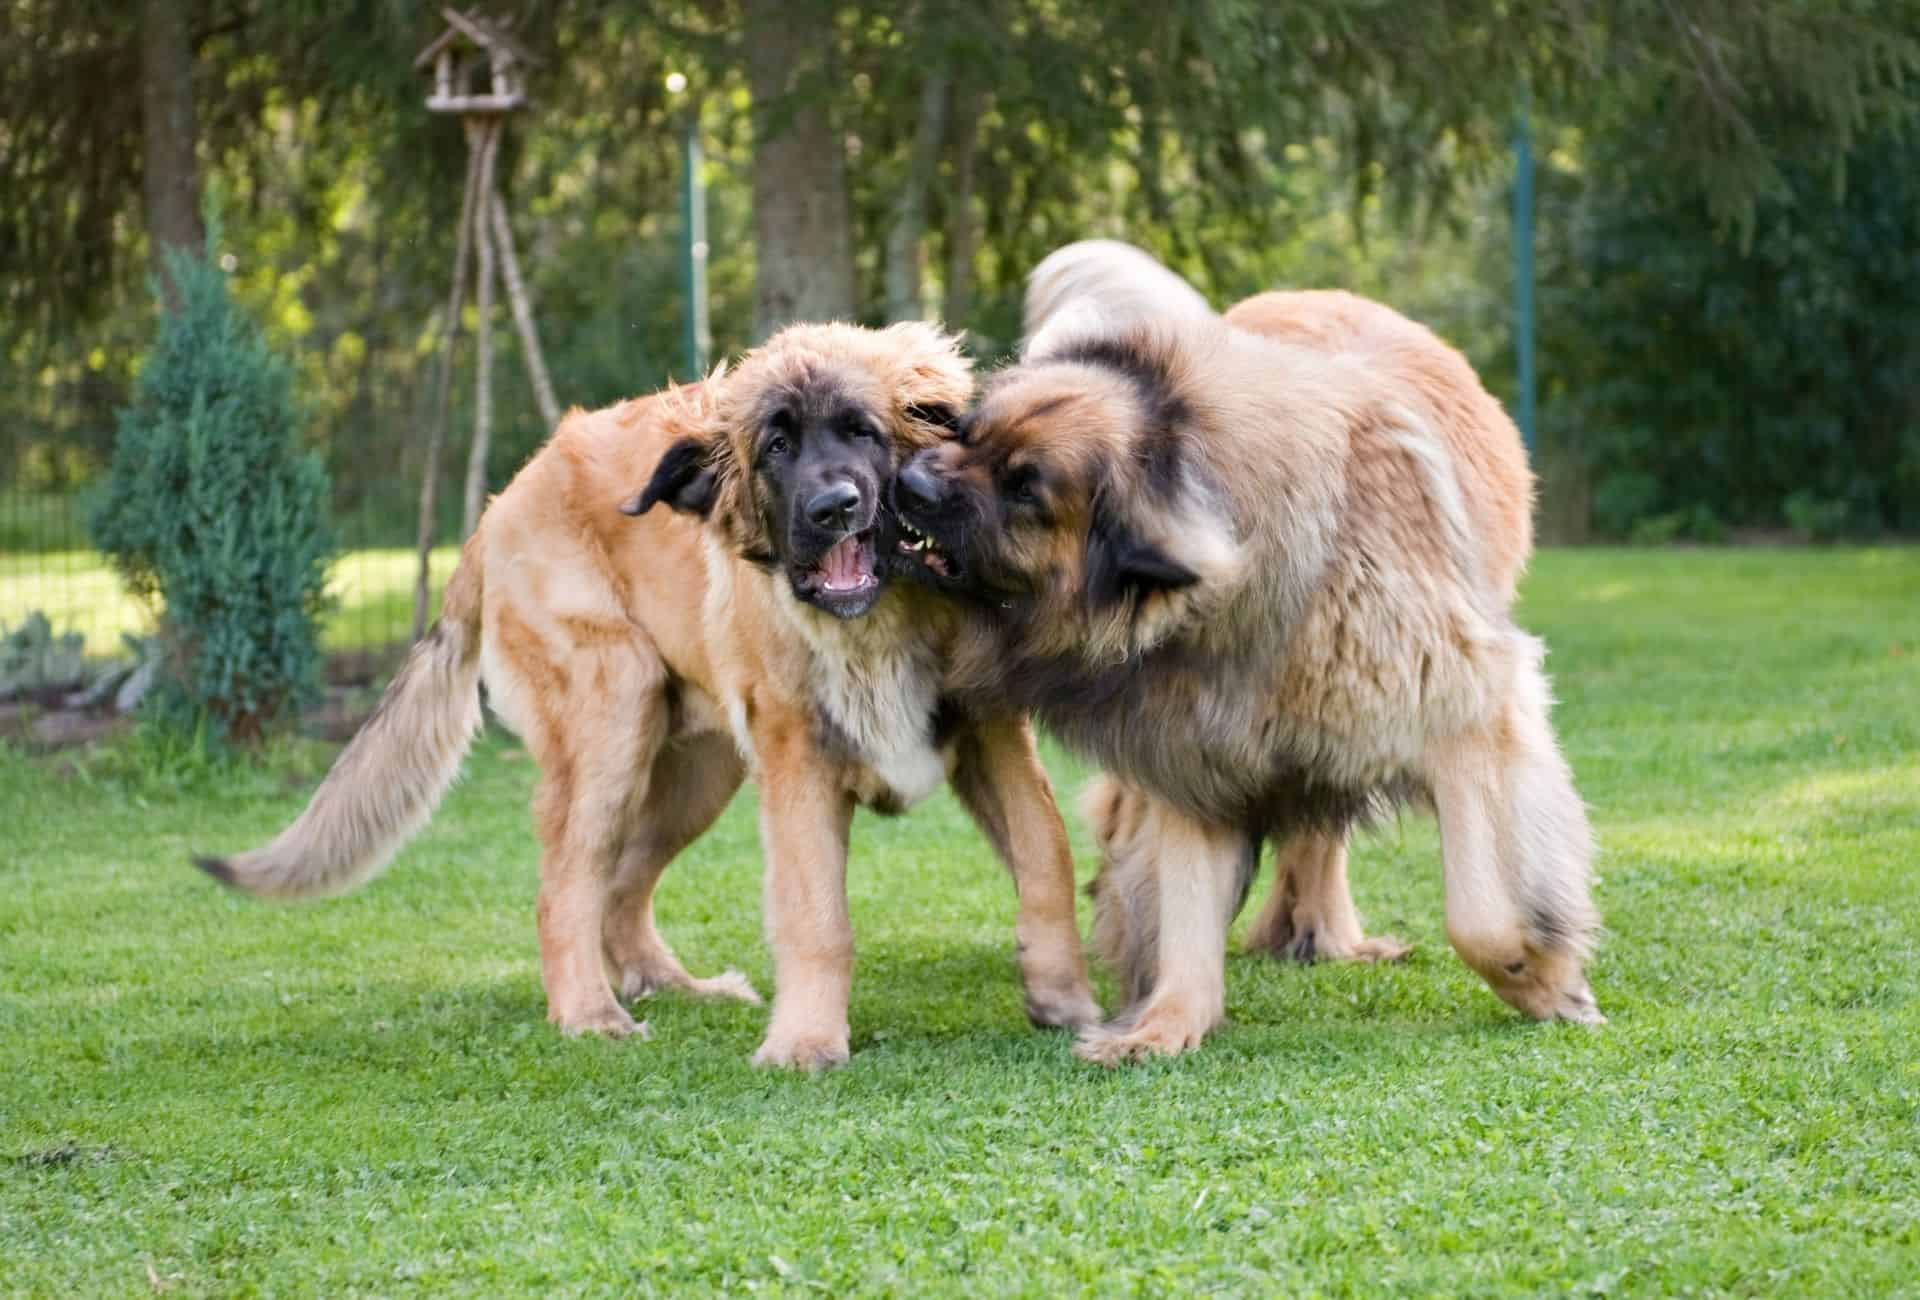 Two Leonbergers playing with each other.